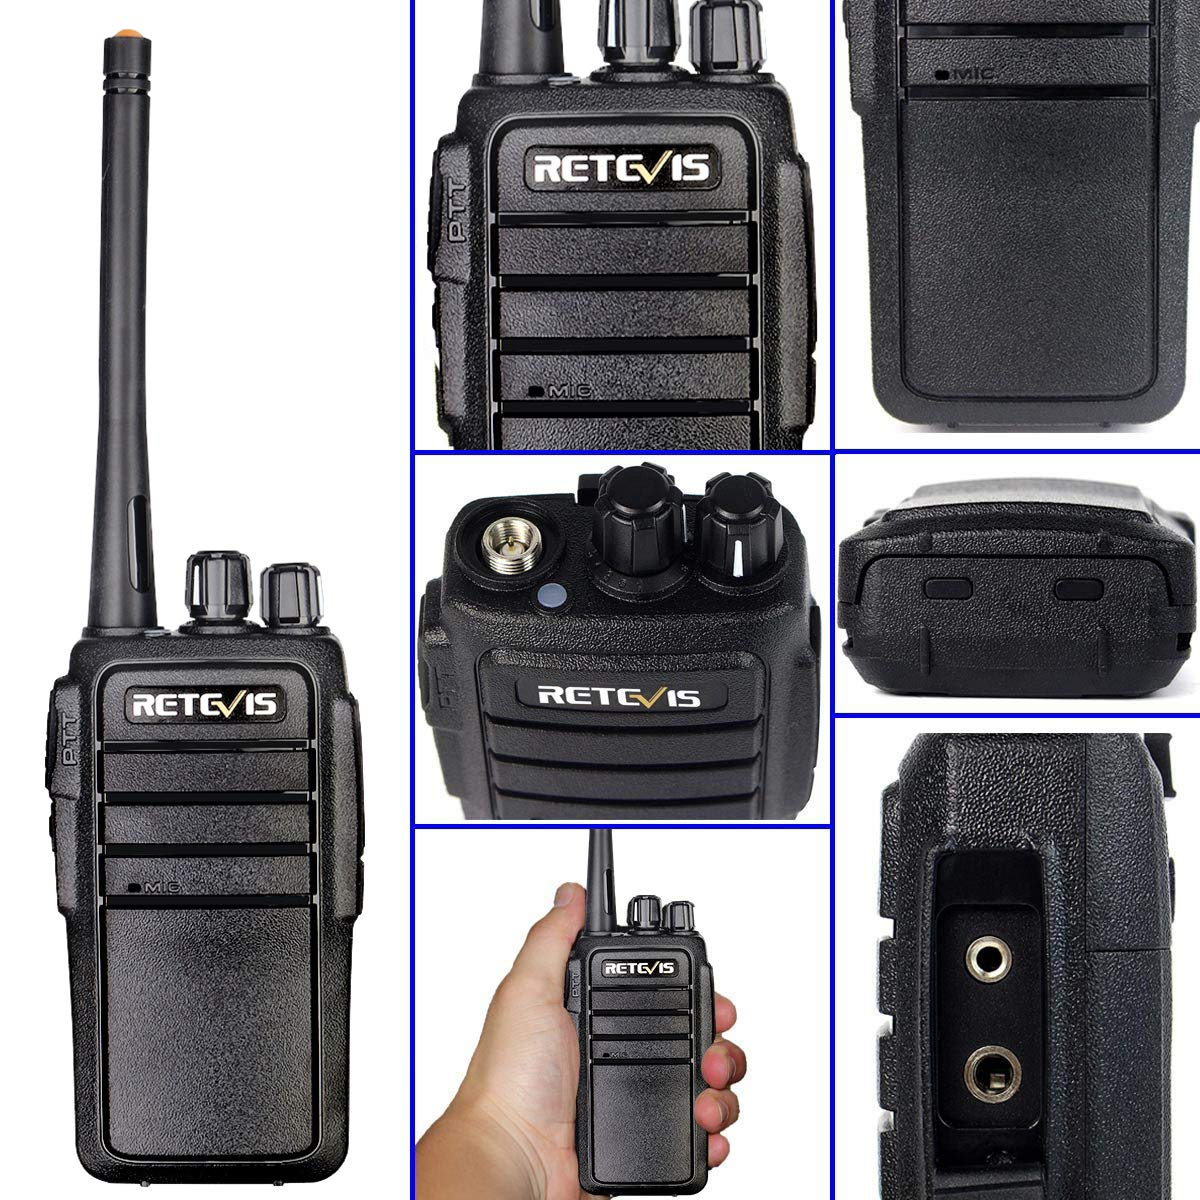 Retevis RT21 Two Way Radio Rechargeable 2 Way Radios UHF FRS 16CH VOX Scrambler Emergency Security Long Range Walkie Talkies with Secret Service Earpiece (10 Pack) by Retevis (Image #6)